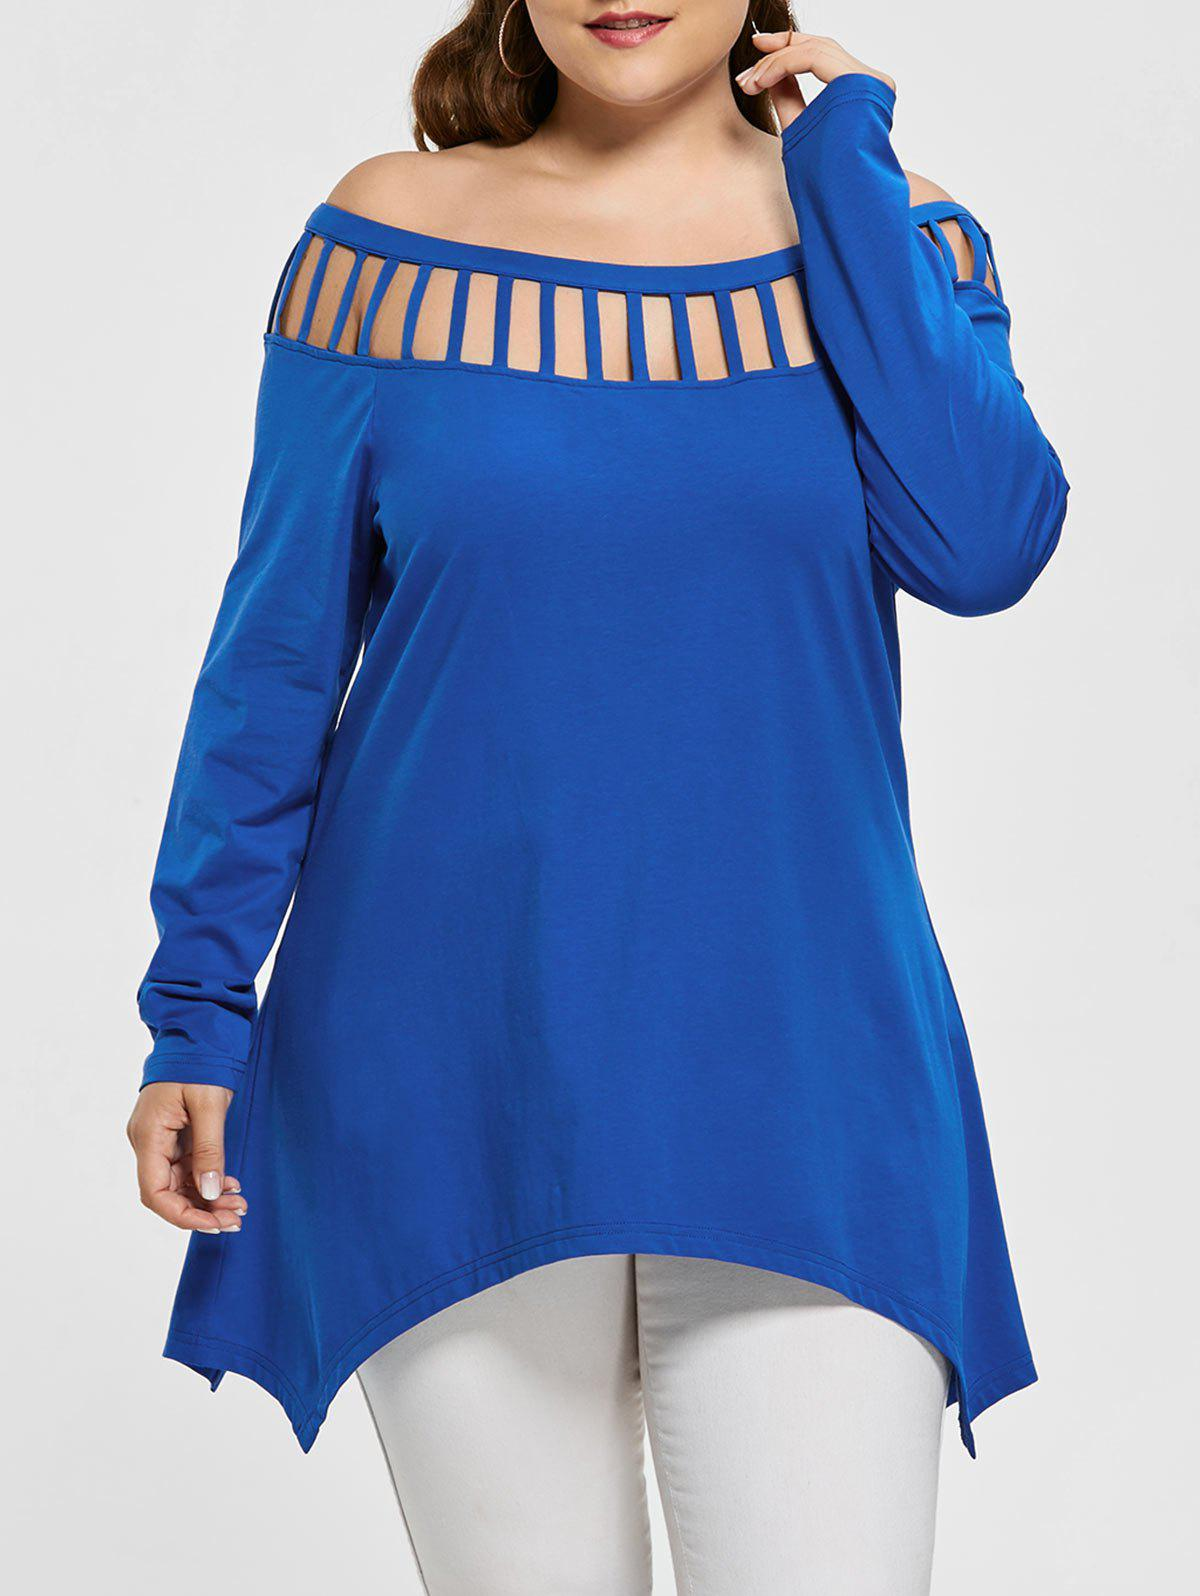 Cut Out Plus Size Long Sleeve T Shirt - BLUE 5XL